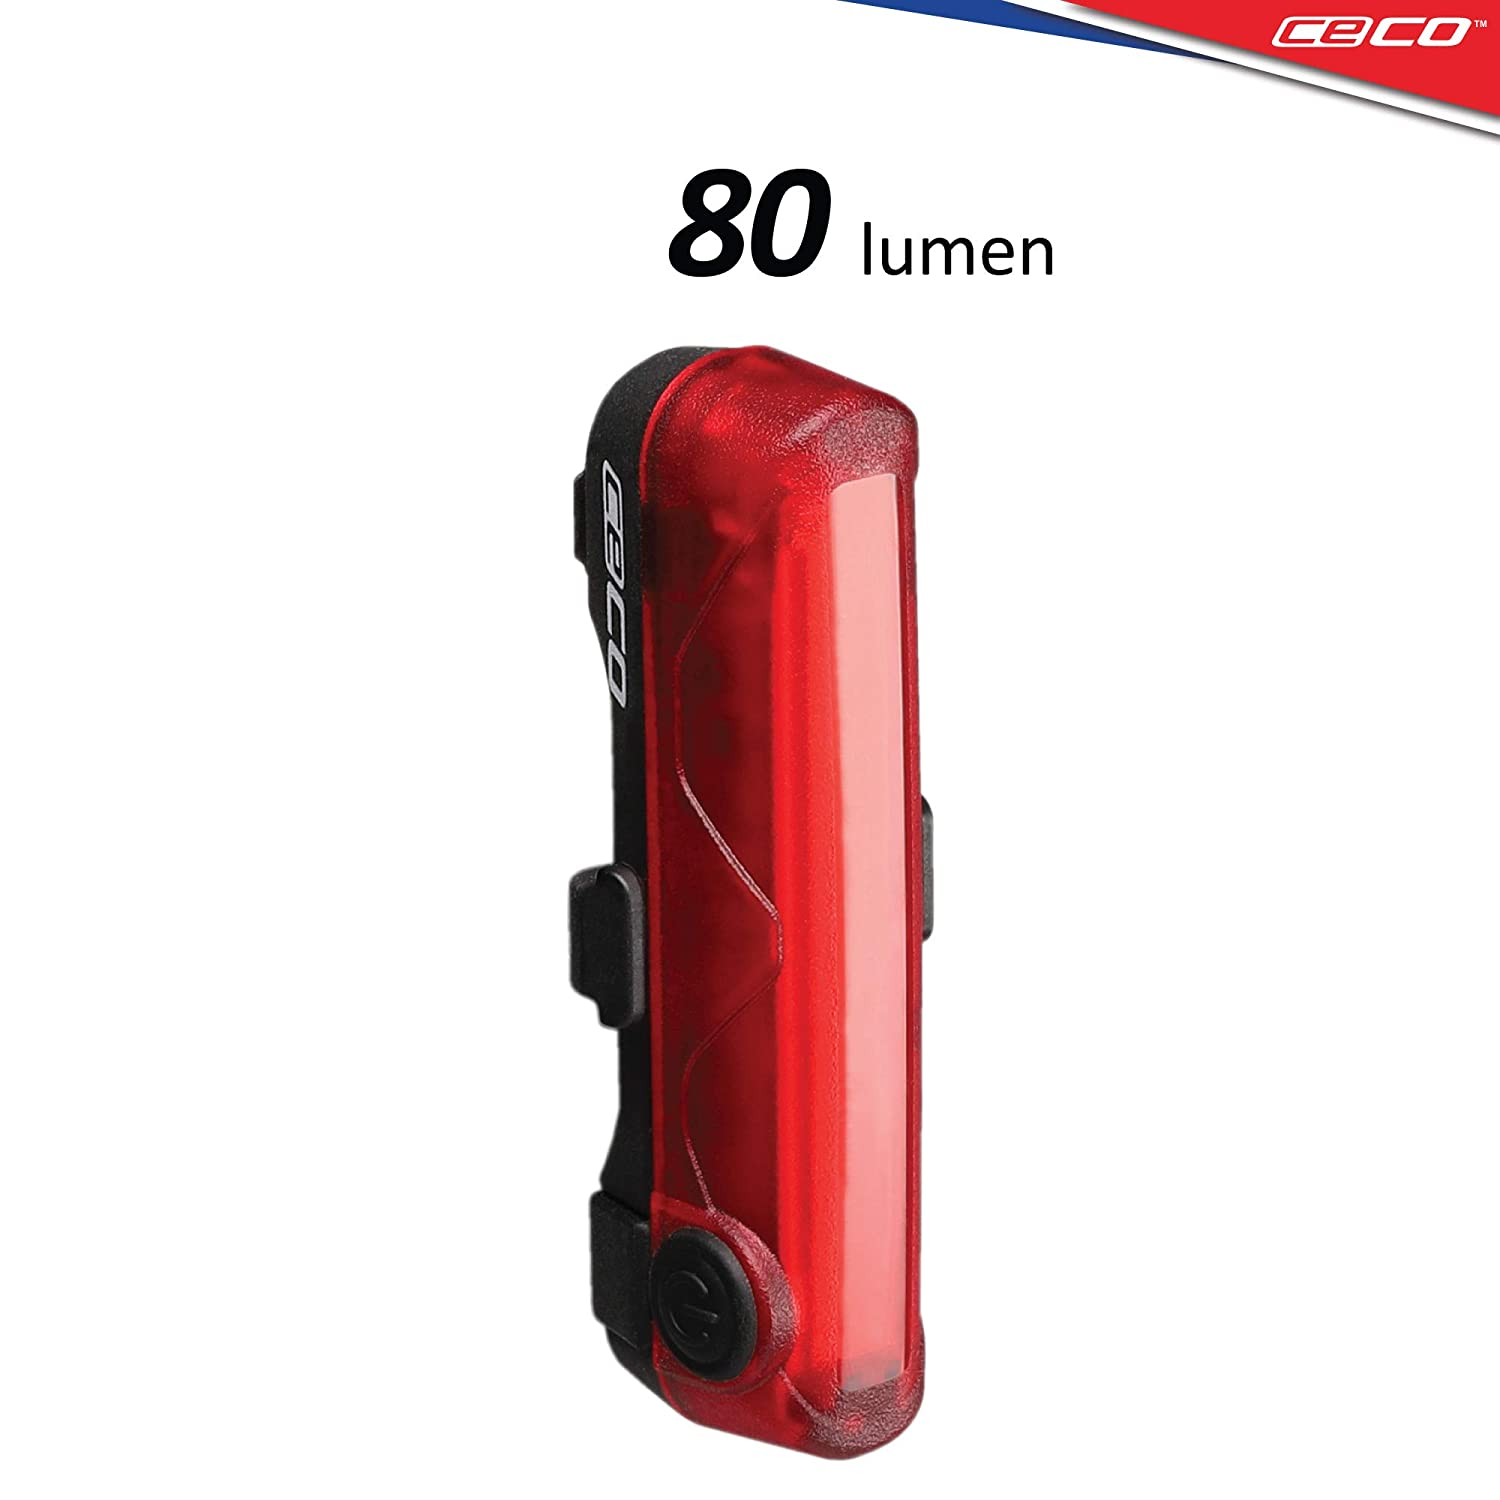 CECO-USA 80 Lumen USB Rechargeable Bike Tail Light – Super Wide Bright Model TC80 Bicycle Rear Light – IP67 Waterproof, FL-1 Impact Resistant – COB LED Red Safety Light – Pro Grade Bike Tail Light